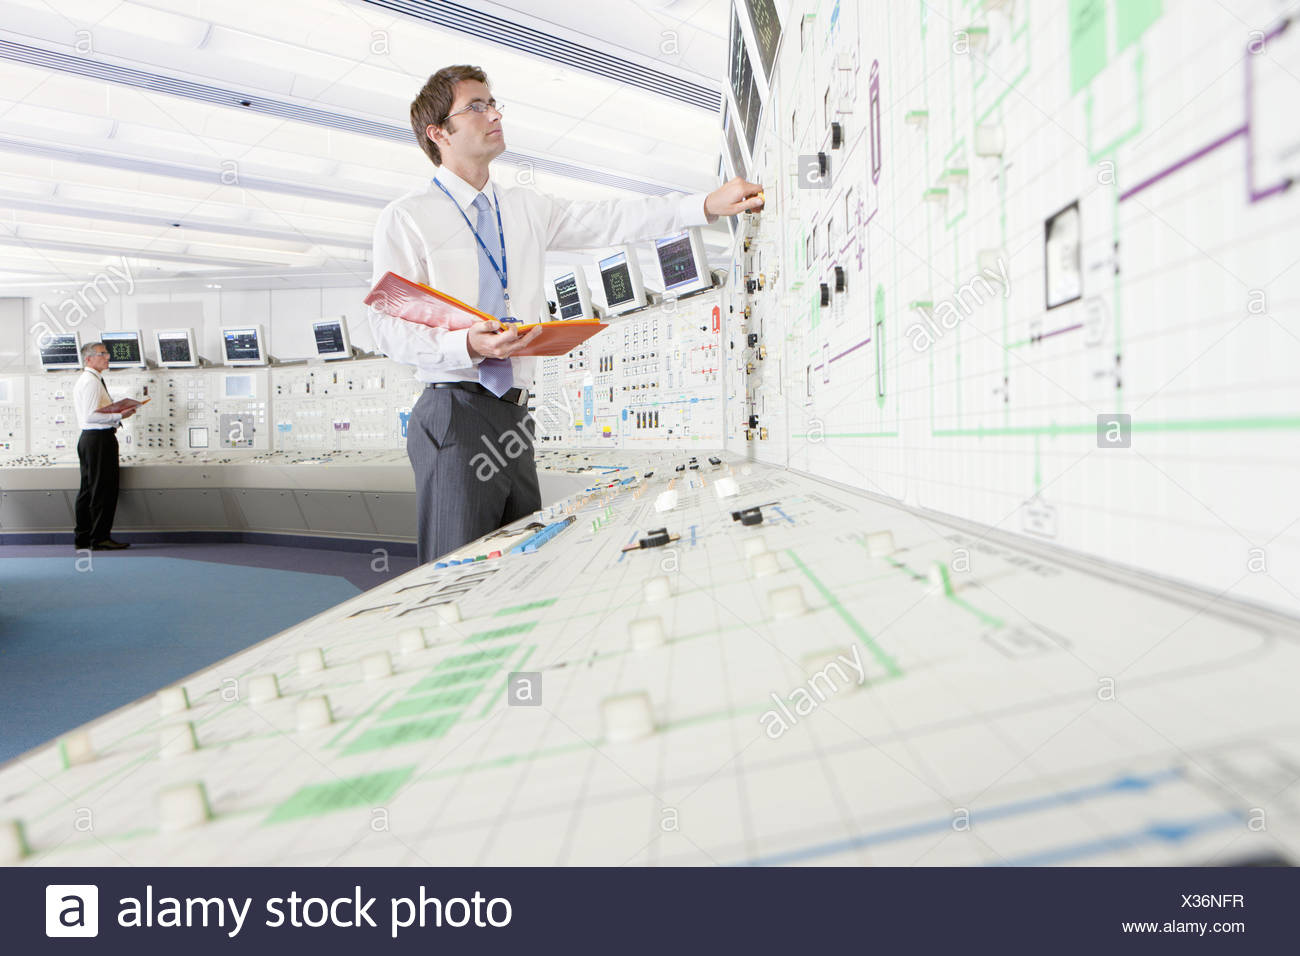 Engineer with binder looking up at computer monitor in control room of nuclear power station - Stock Image